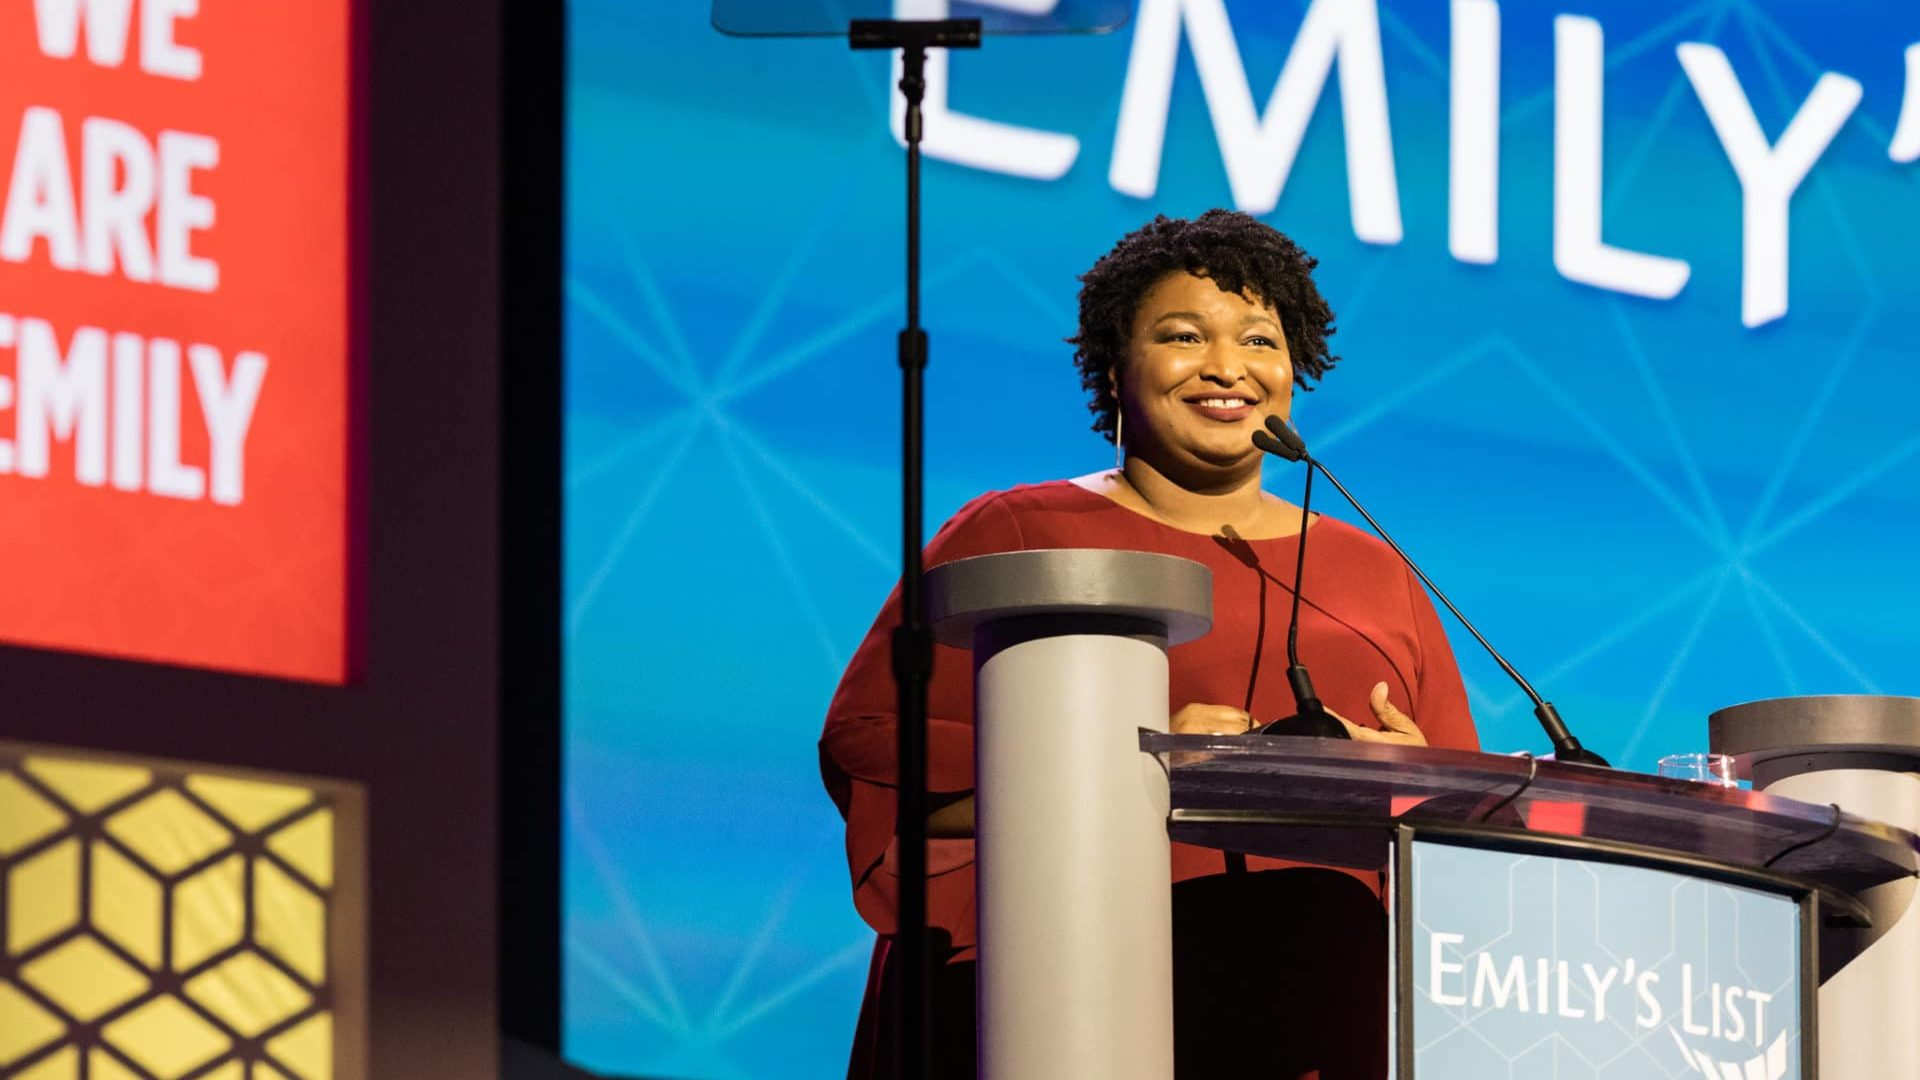 Emilys List Endorsements 2020.Emily S List Gala Honors Stacey Abrams Celebrates Diverse